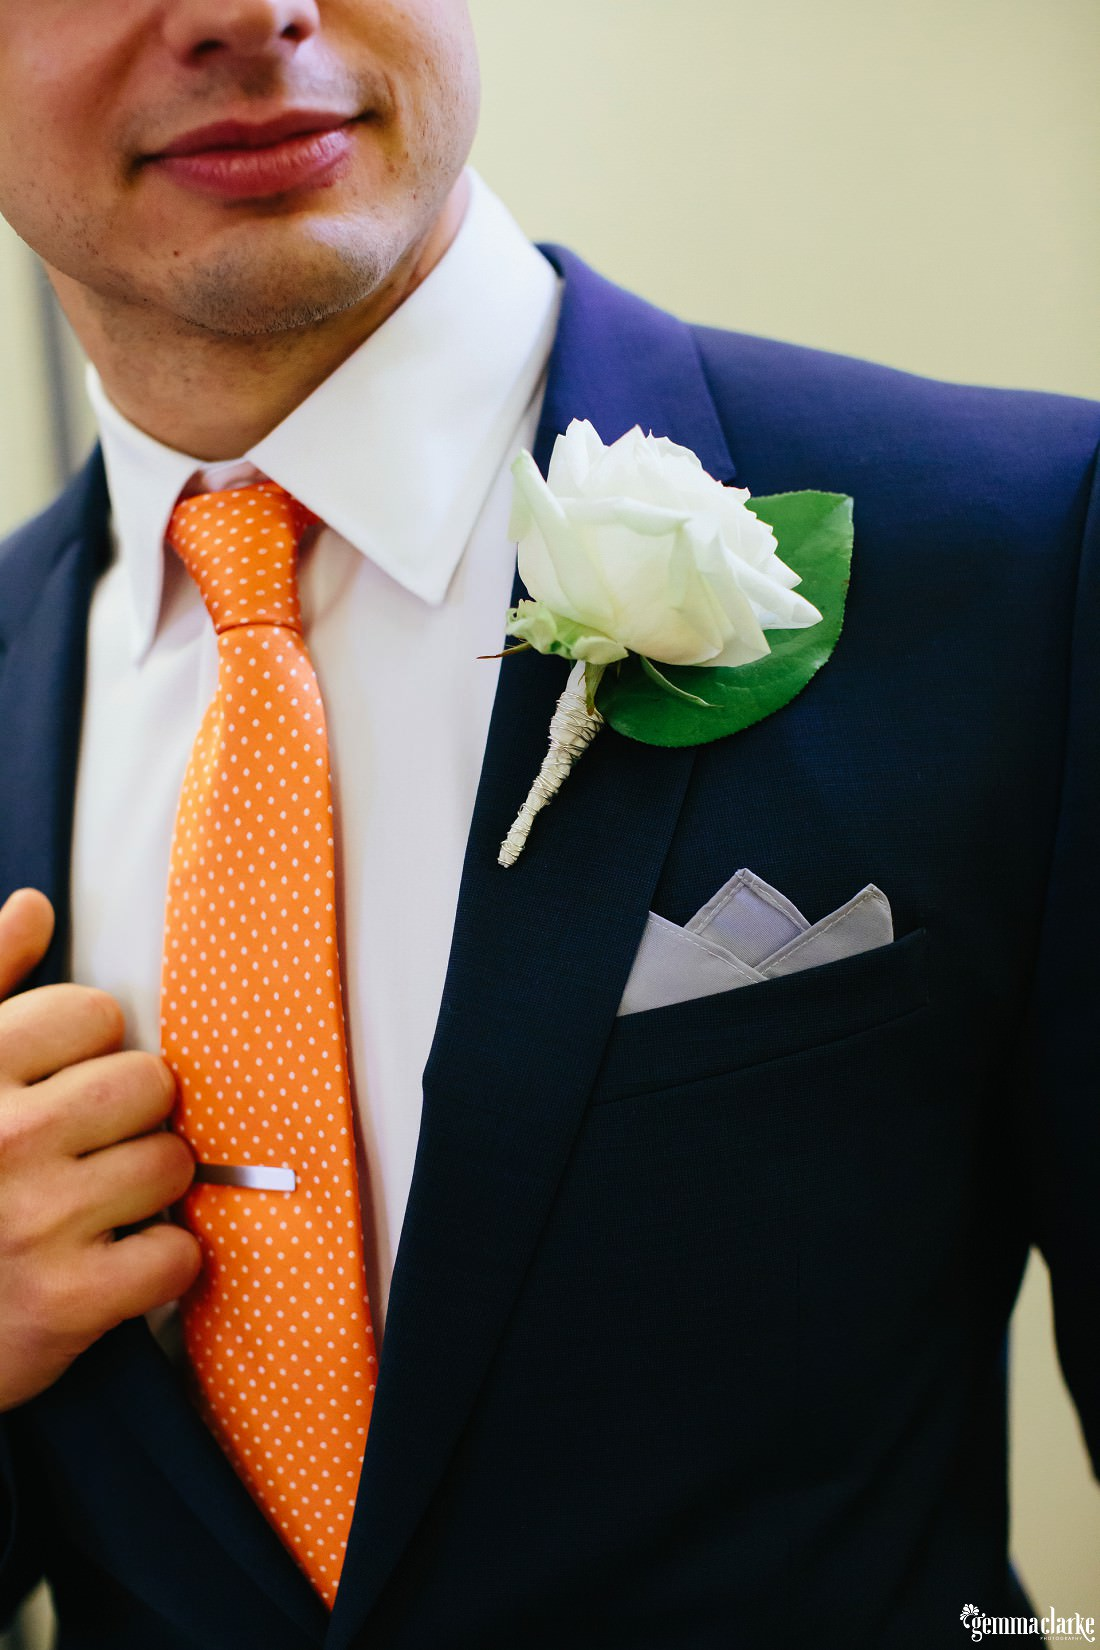 A close up of the details of a groom's attire including orange tie, tie bar and floral buttonhole